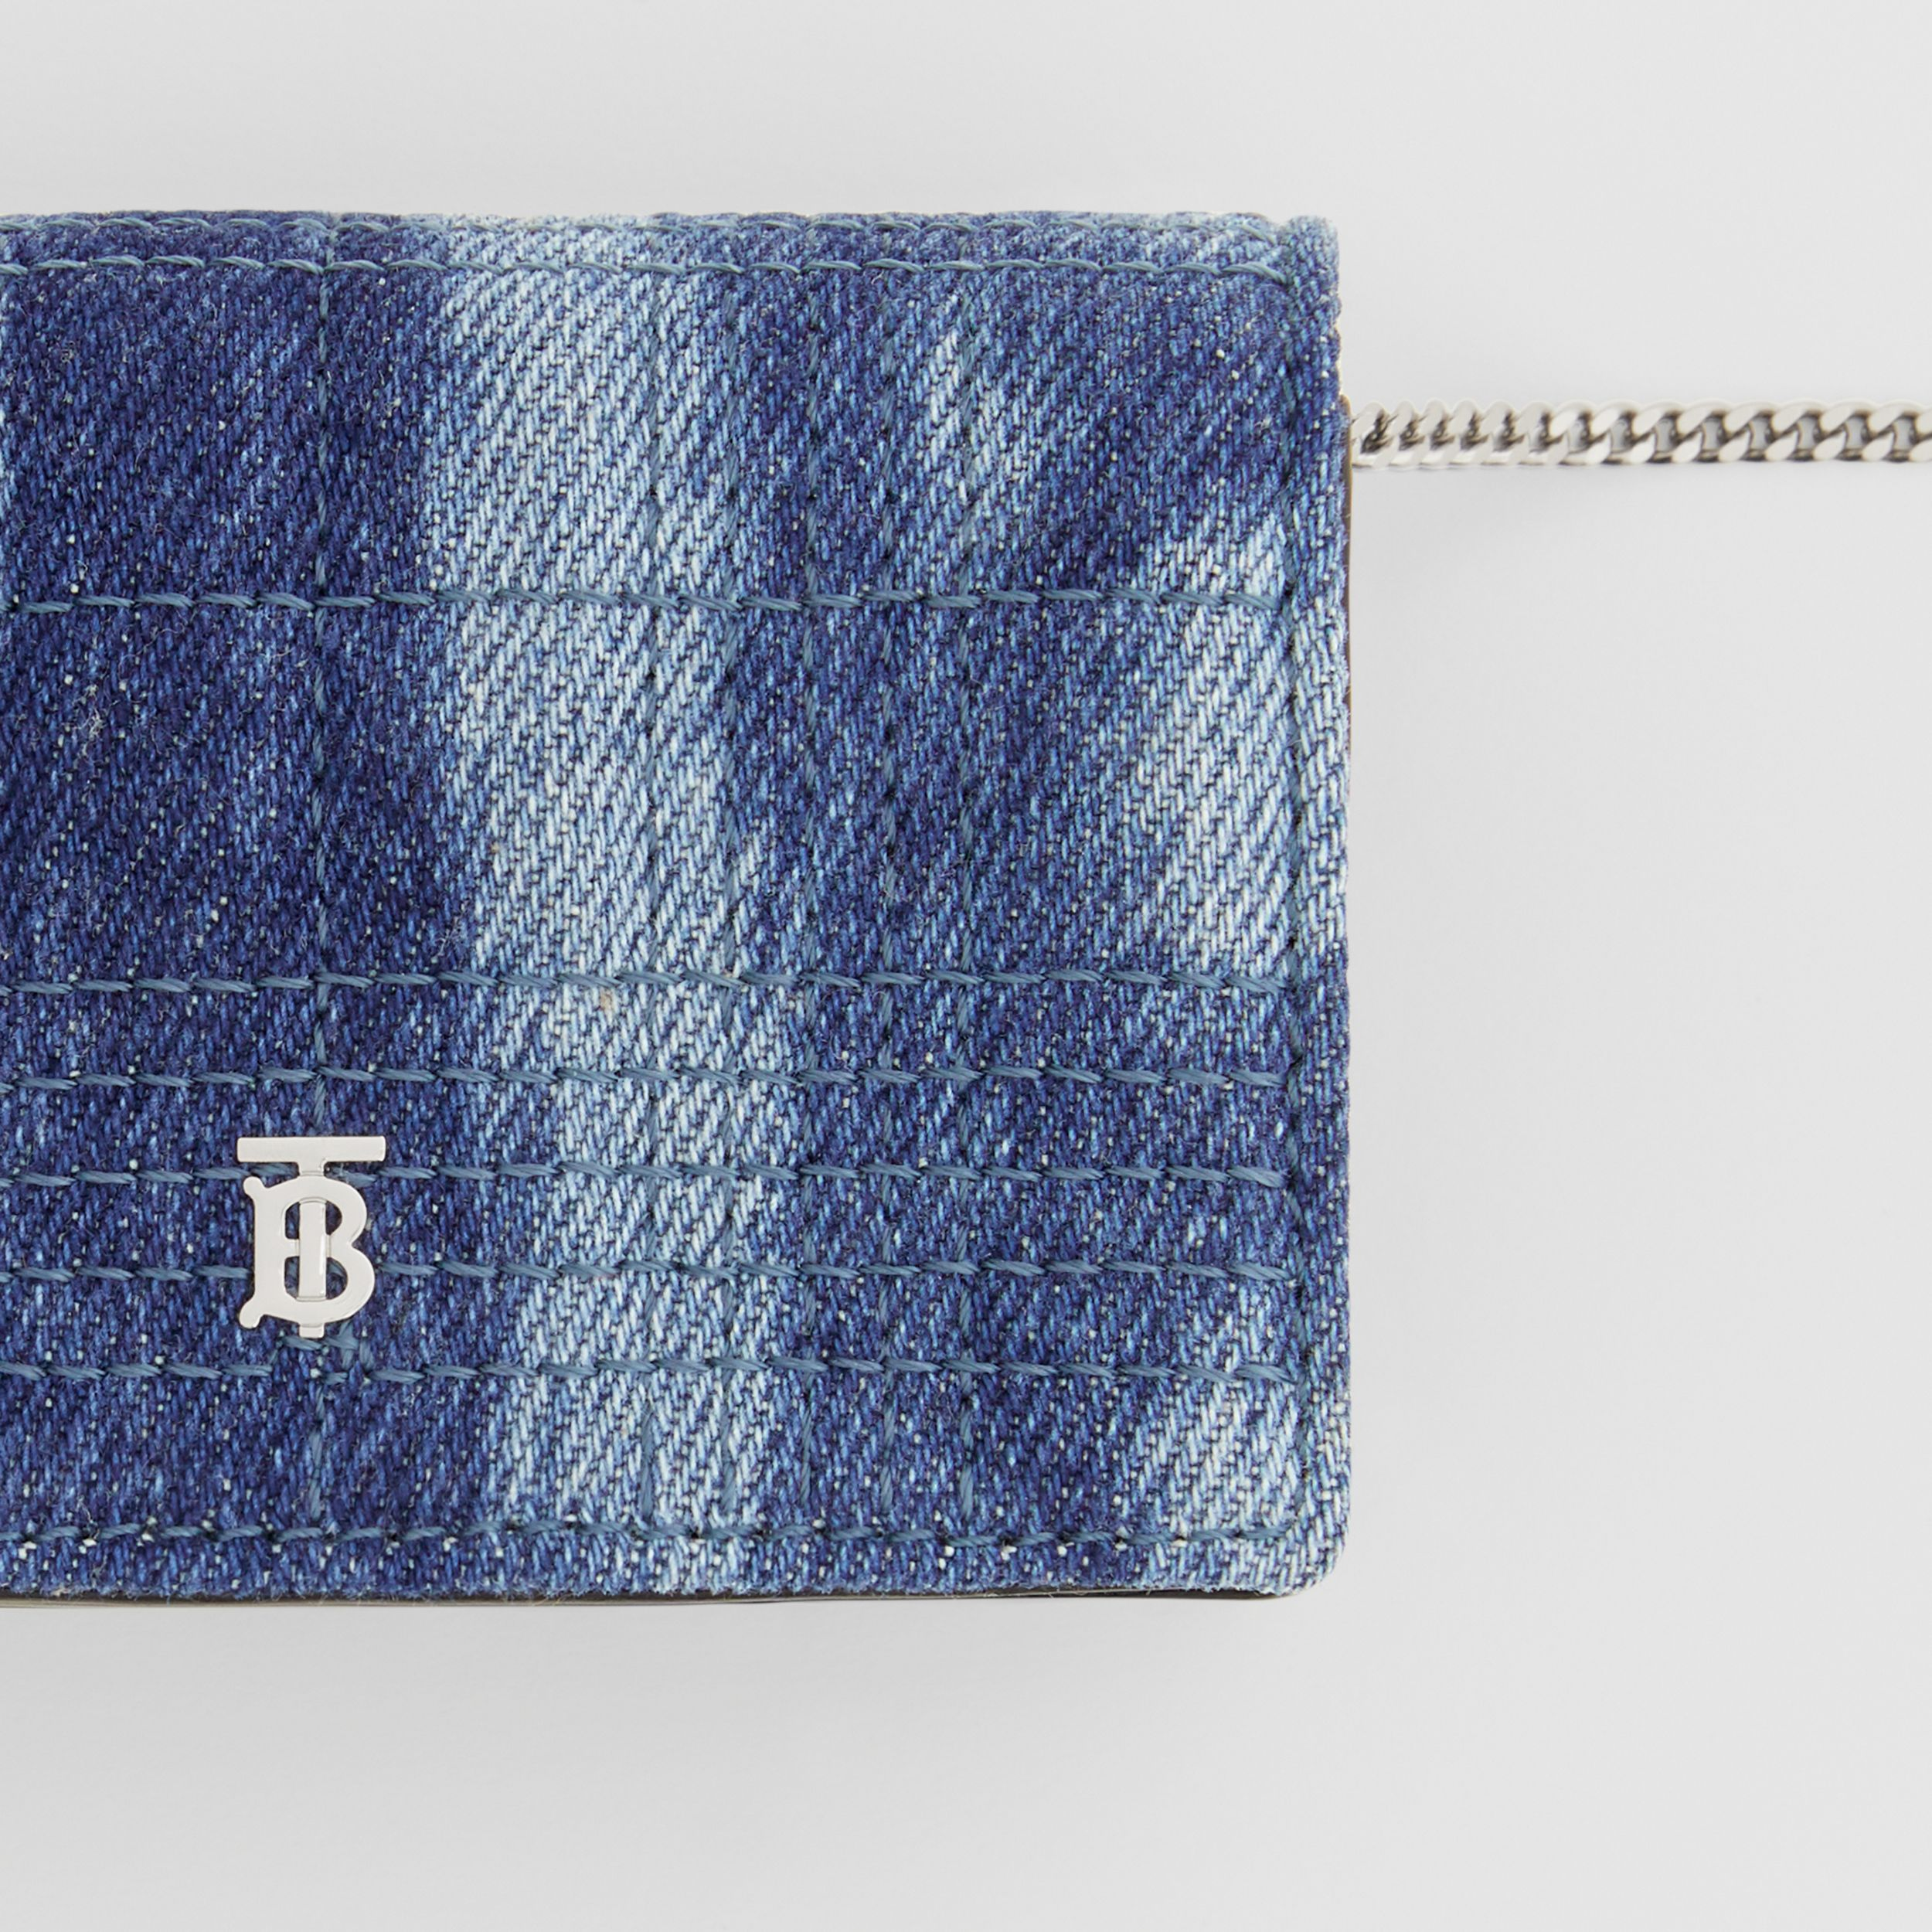 Quilted Denim Card Case with Detachable Strap in Blue | Burberry - 2